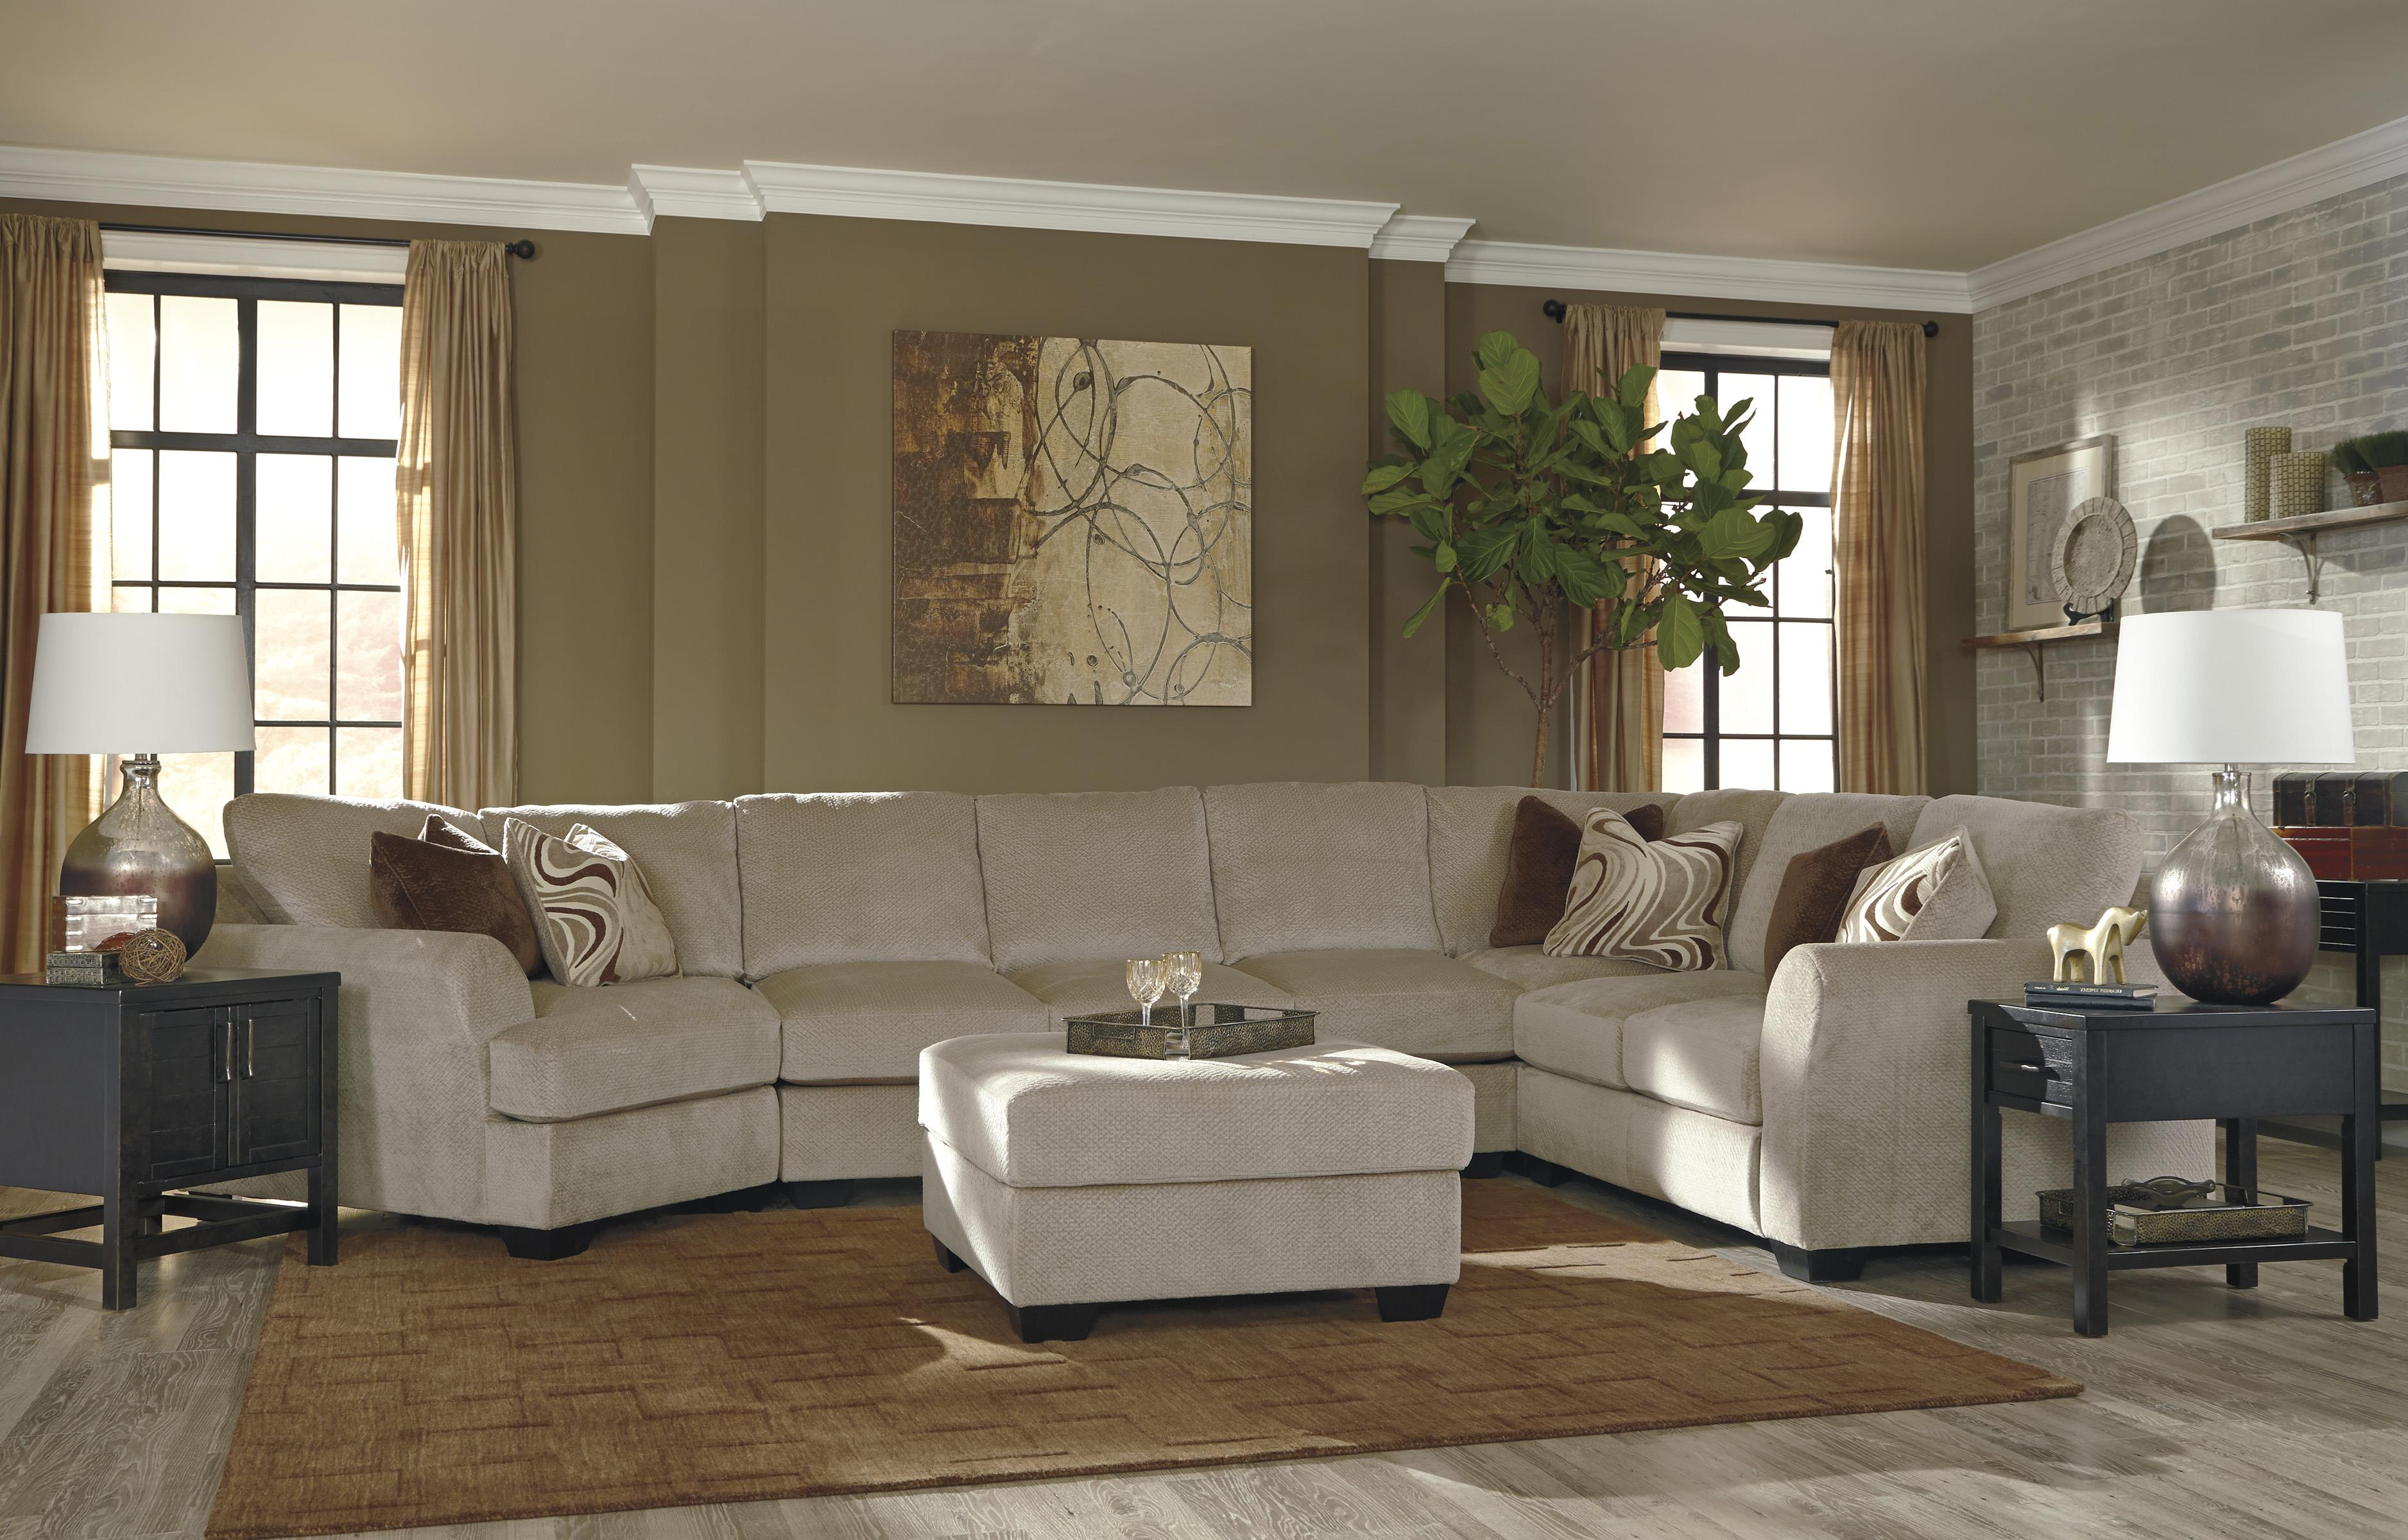 Benchcraft Hazes Stationary Living Room Group - Item Number: 65701 Living Room Group 8